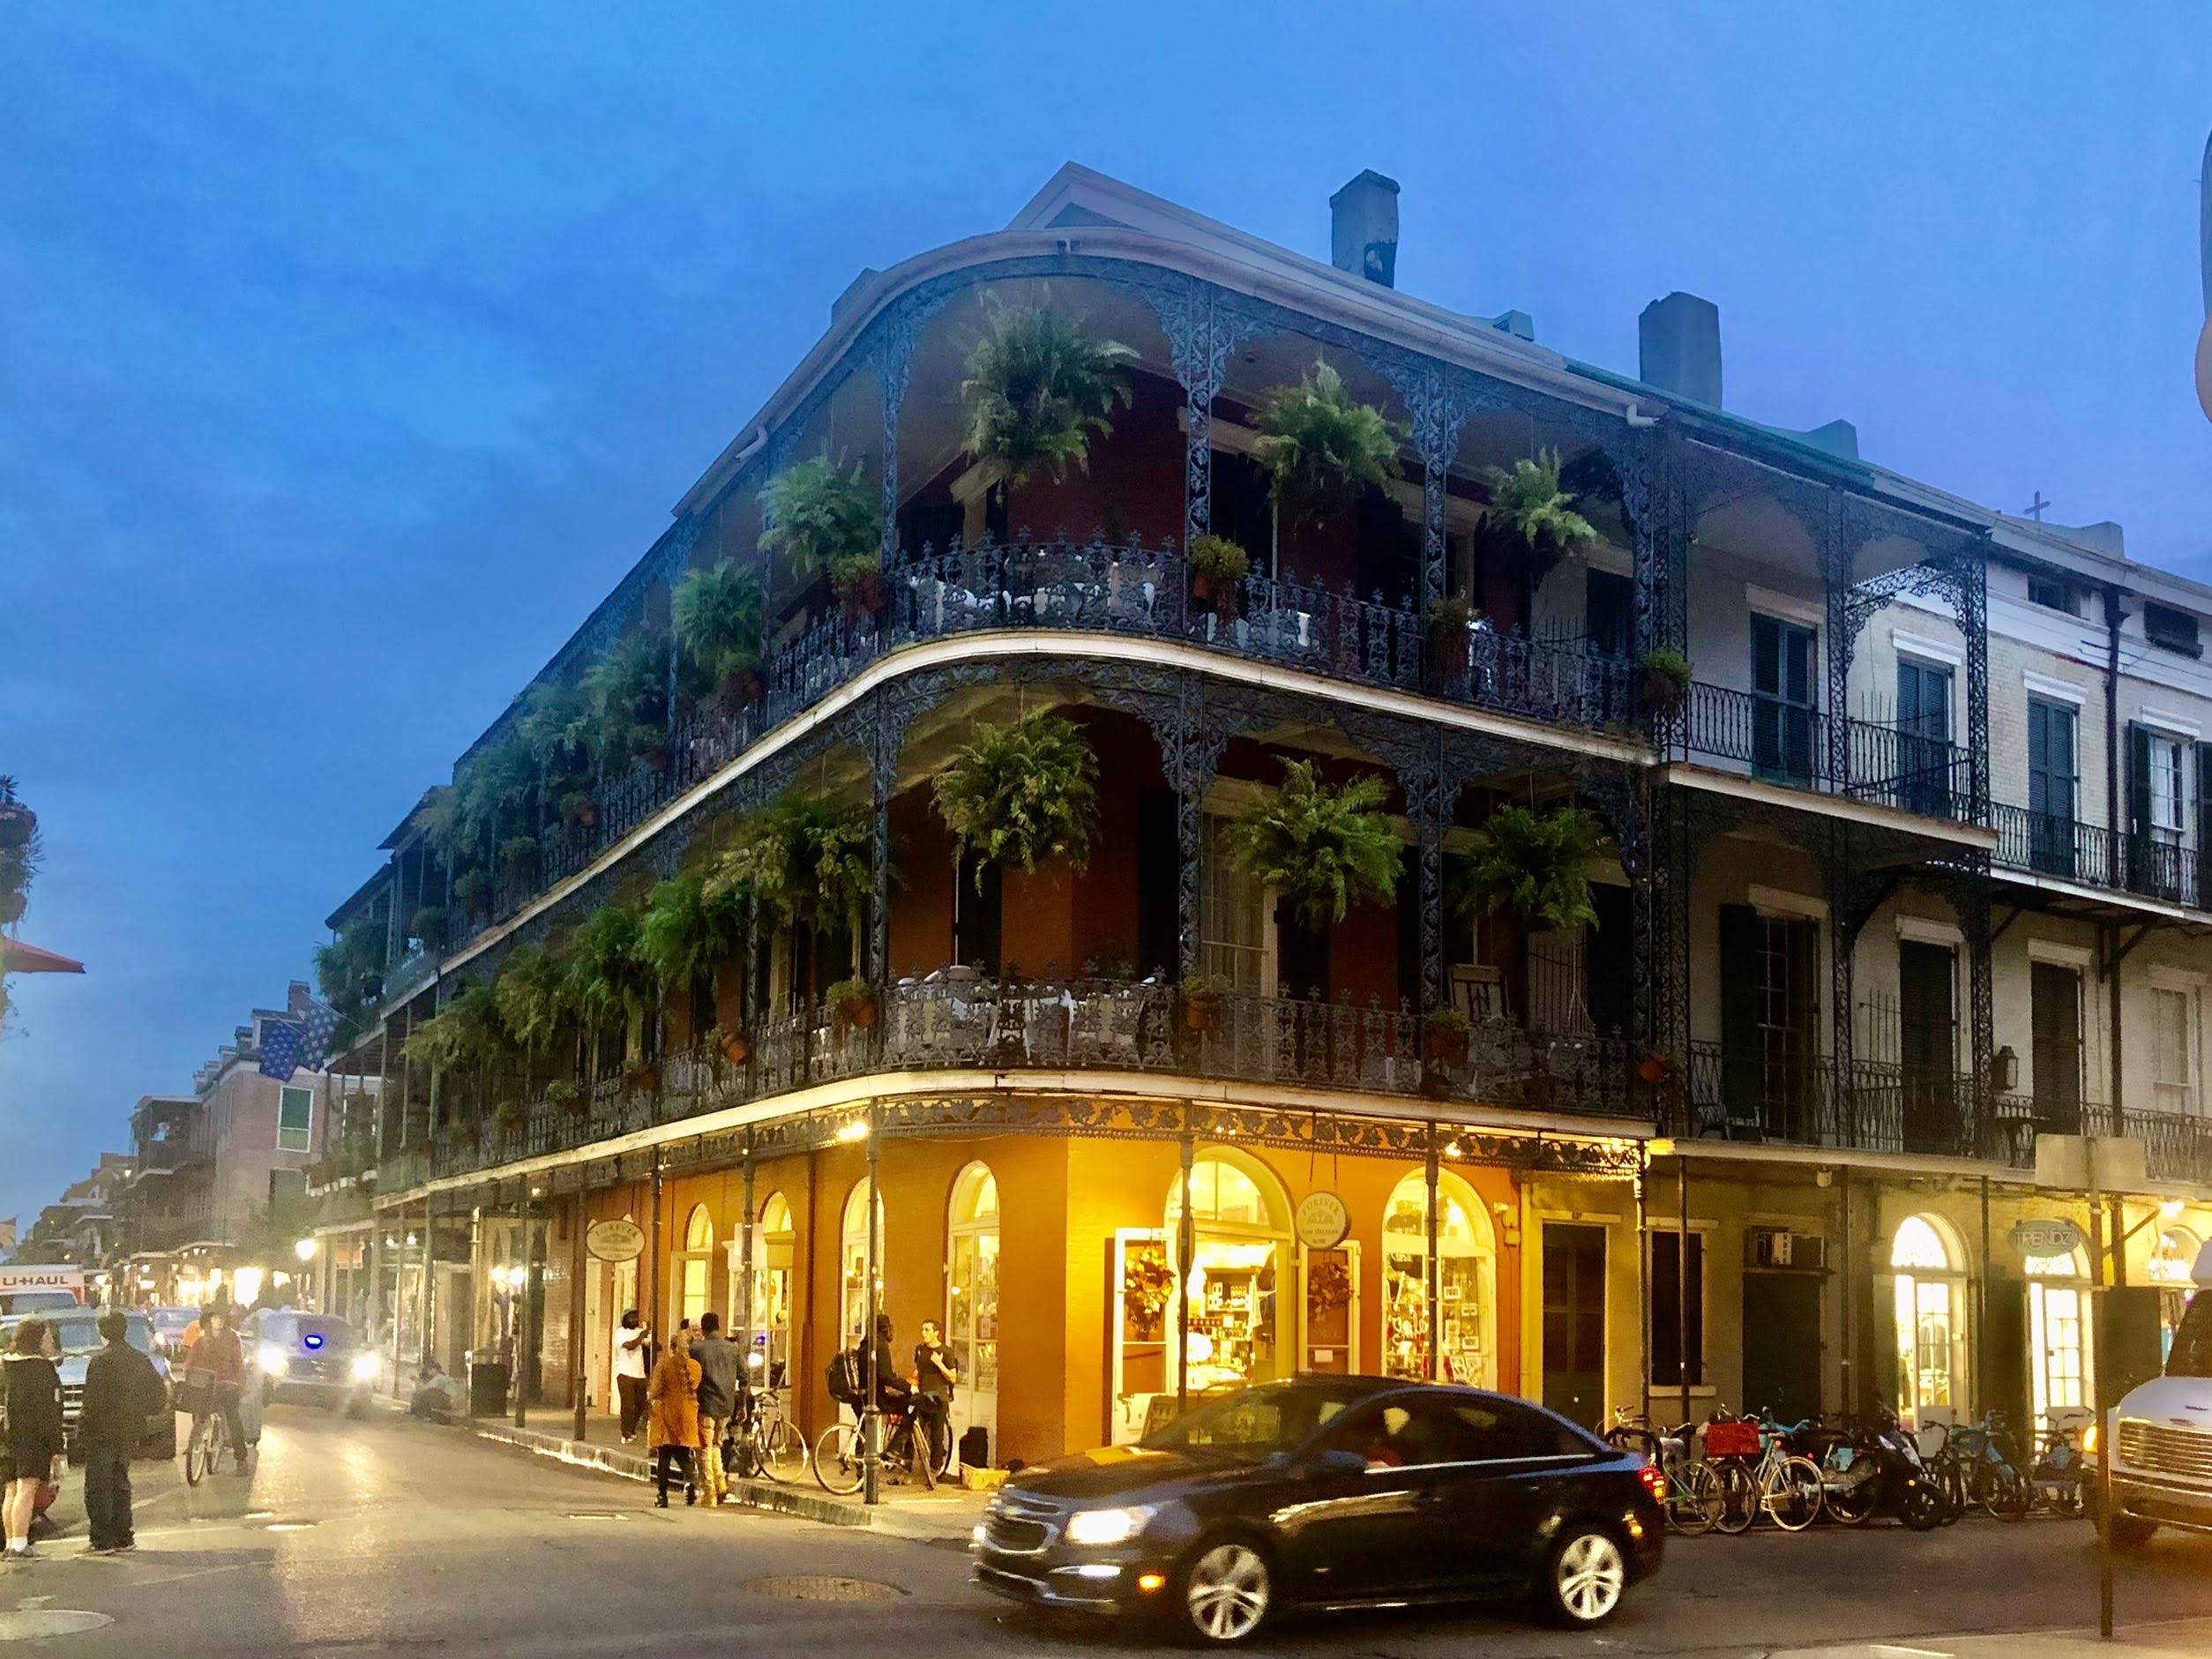 French Quarter - Bourbon Street